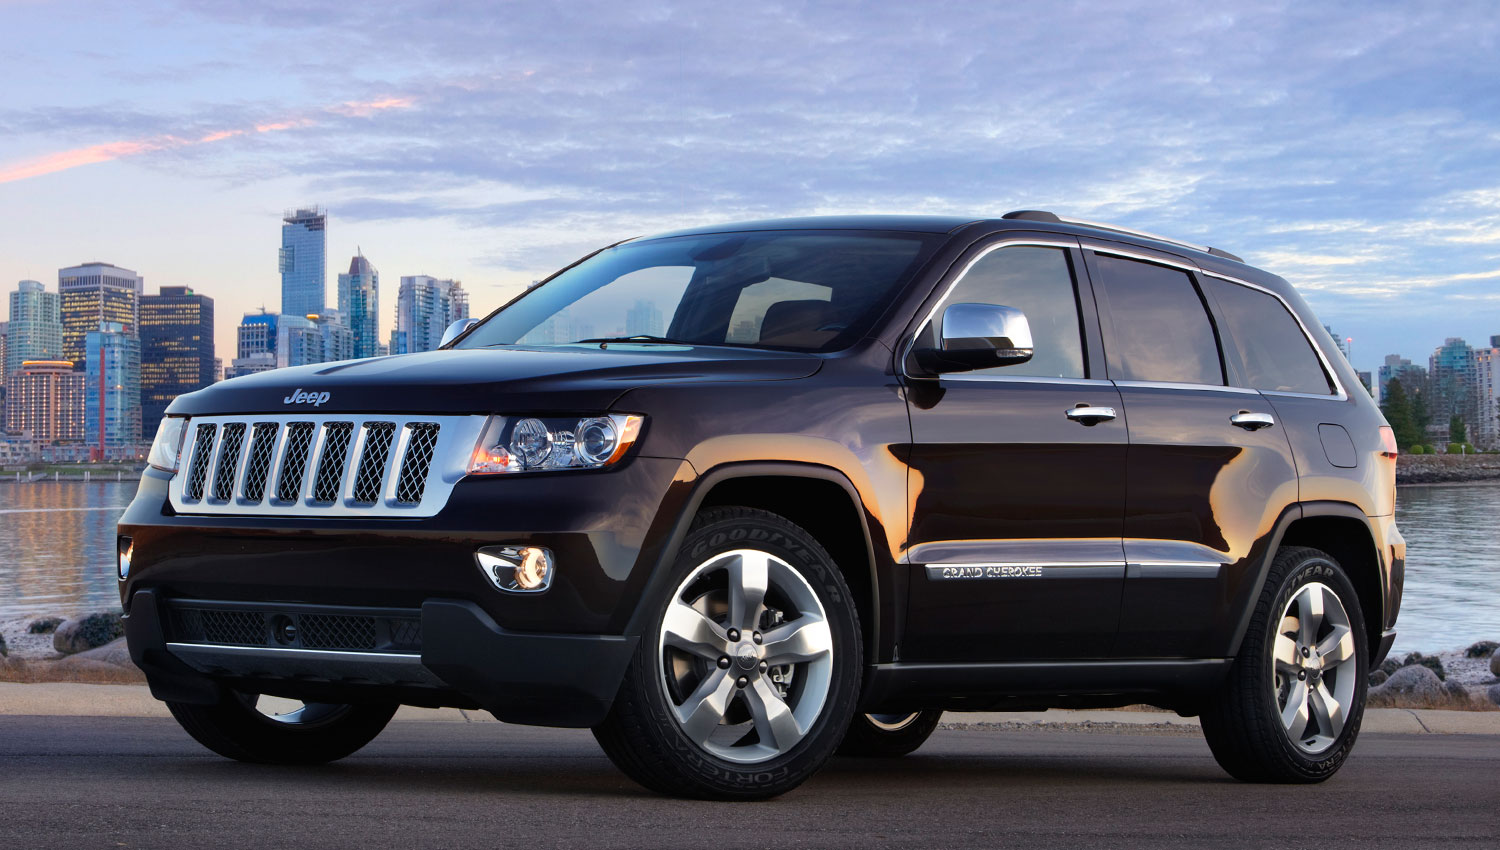 hight resolution of 2012 jeep grand cherokee 12 jeep grand cherokee 12